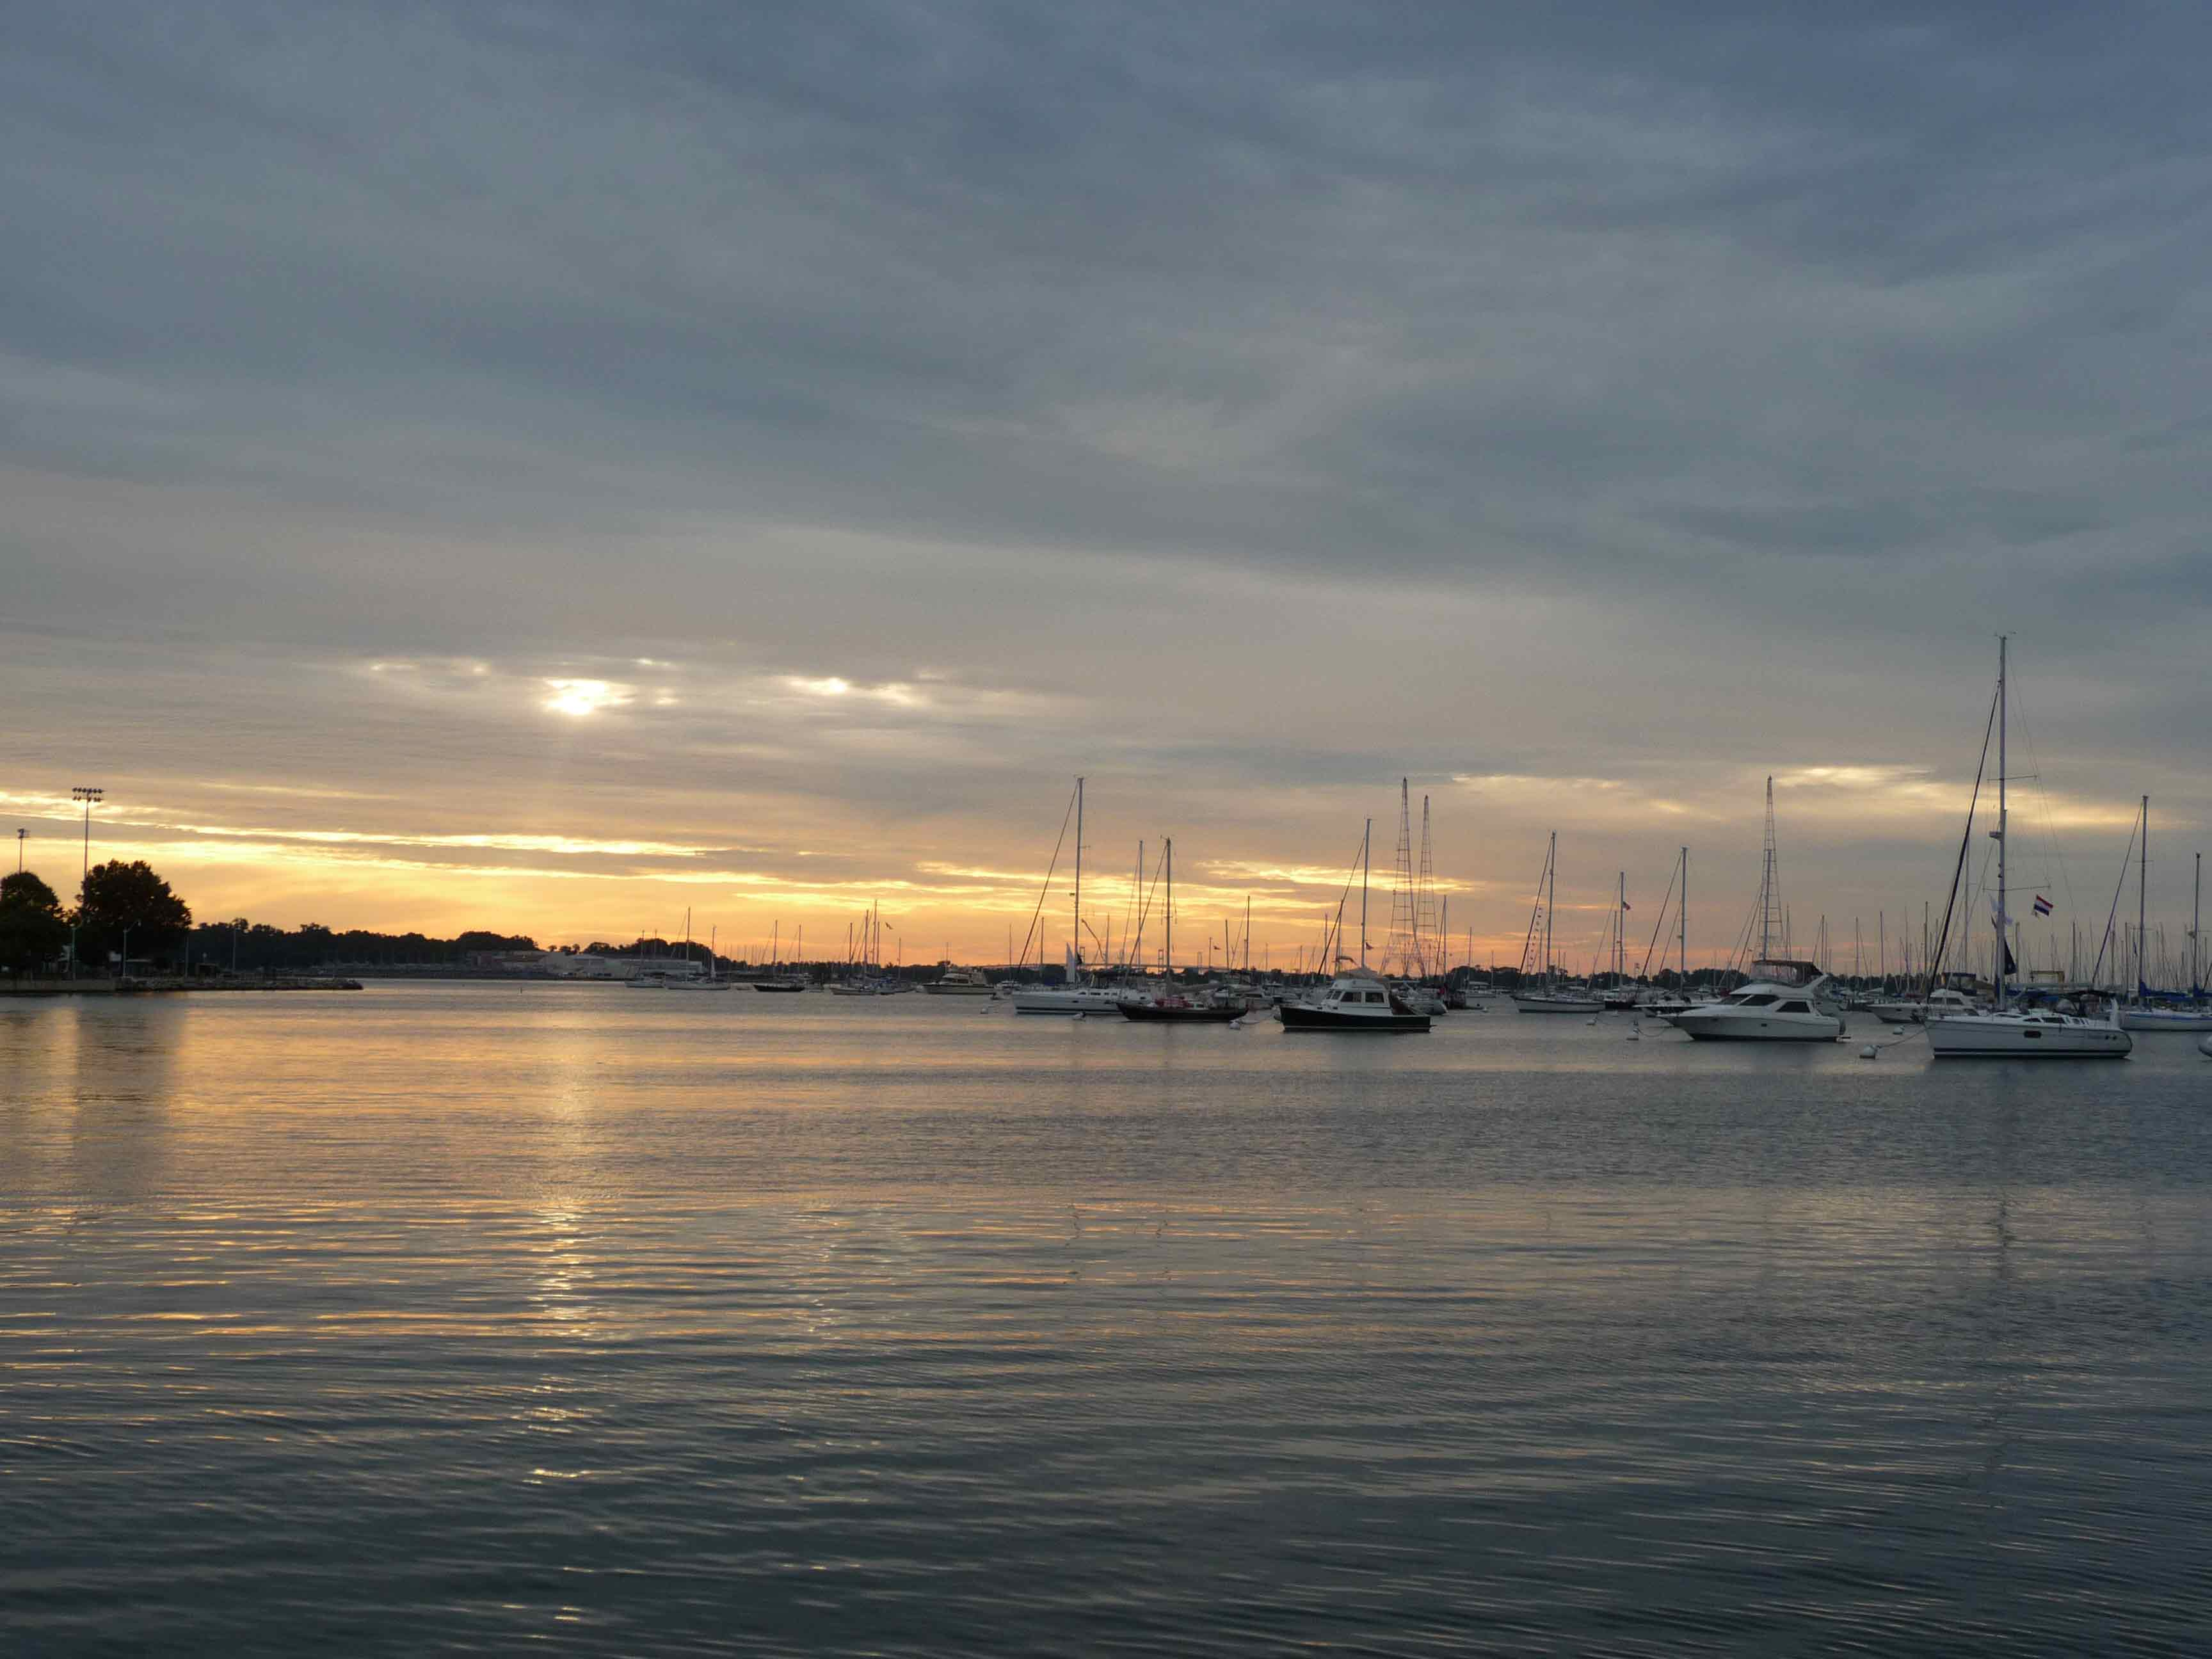 Annapolis, Maryland: Boat and Breakfast aboard a 74-foot schooner